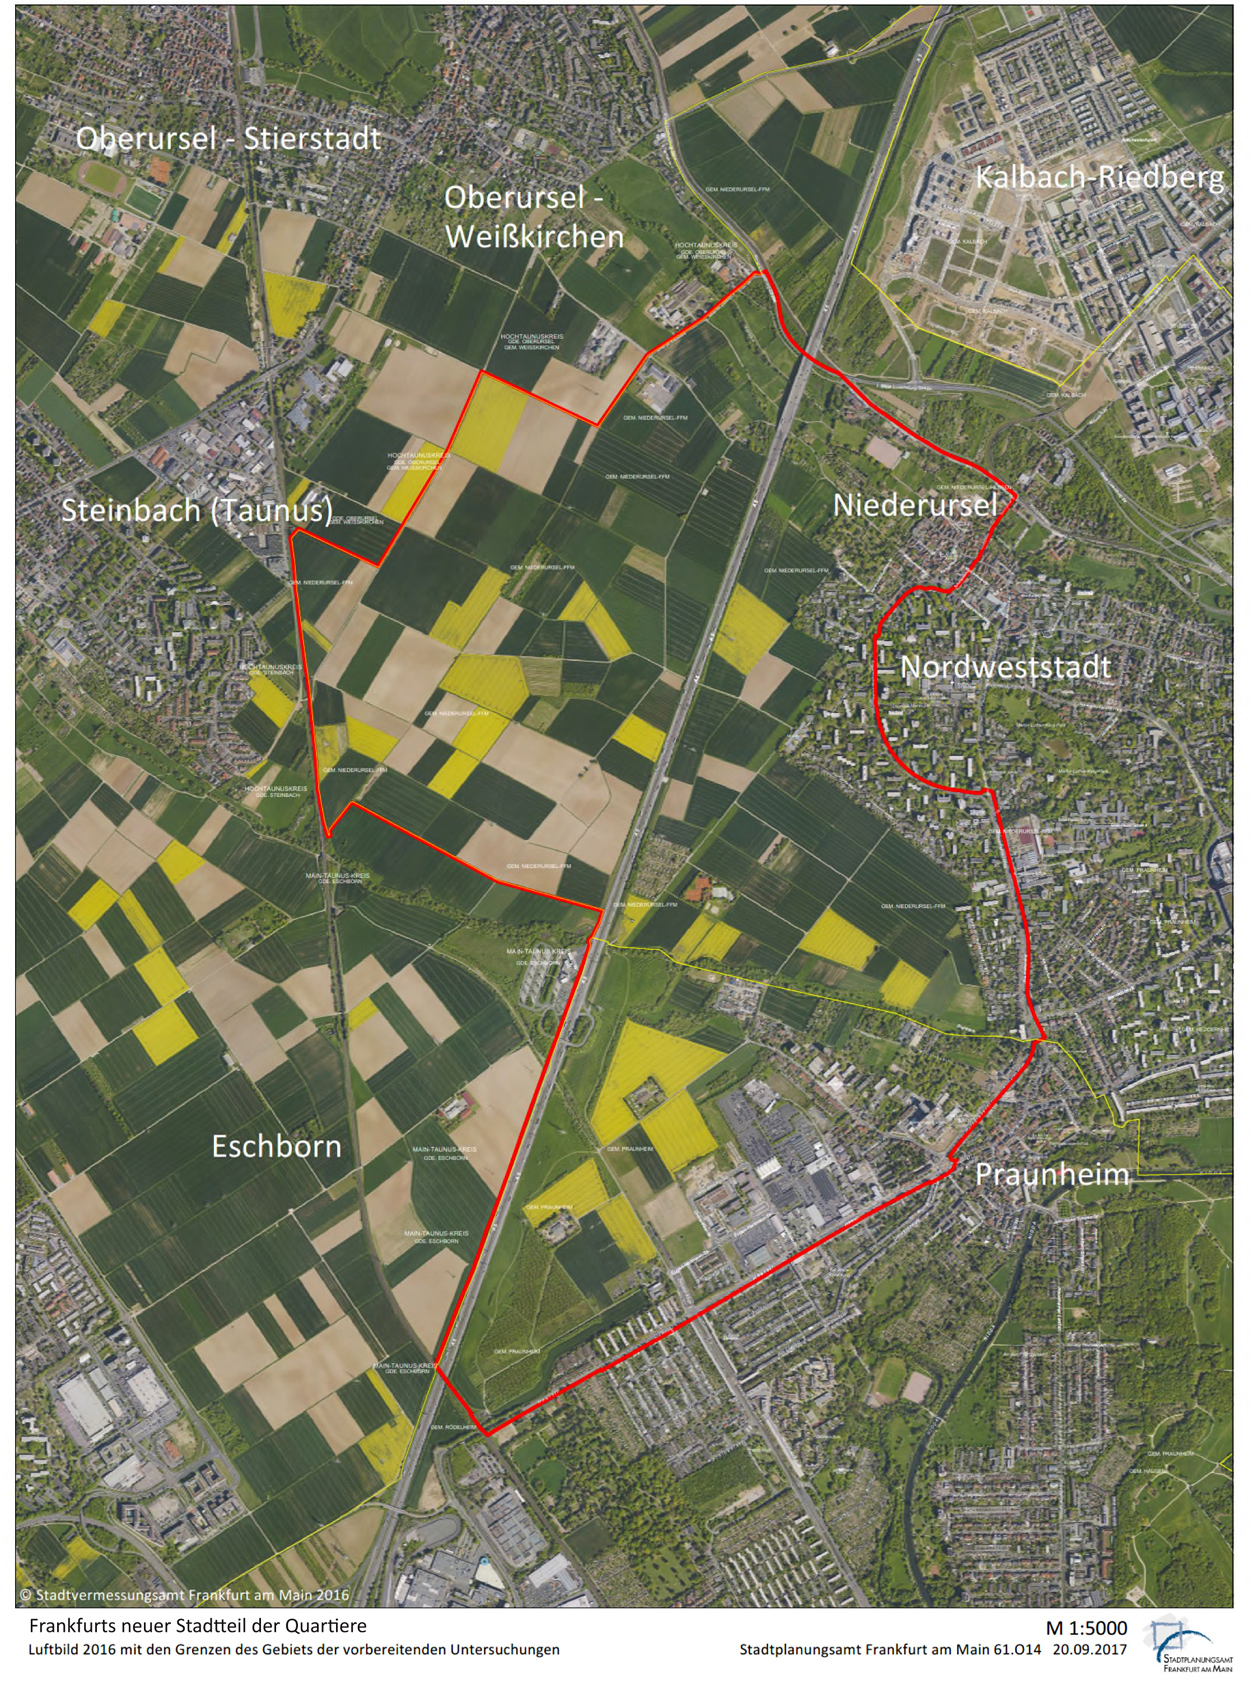 Aerial photo 2016 with the borders of the area covered by the preparatory investigation, © City of Frankfurt Planning Dept.; aerial photo: City of Frankfurt Survey Dept.